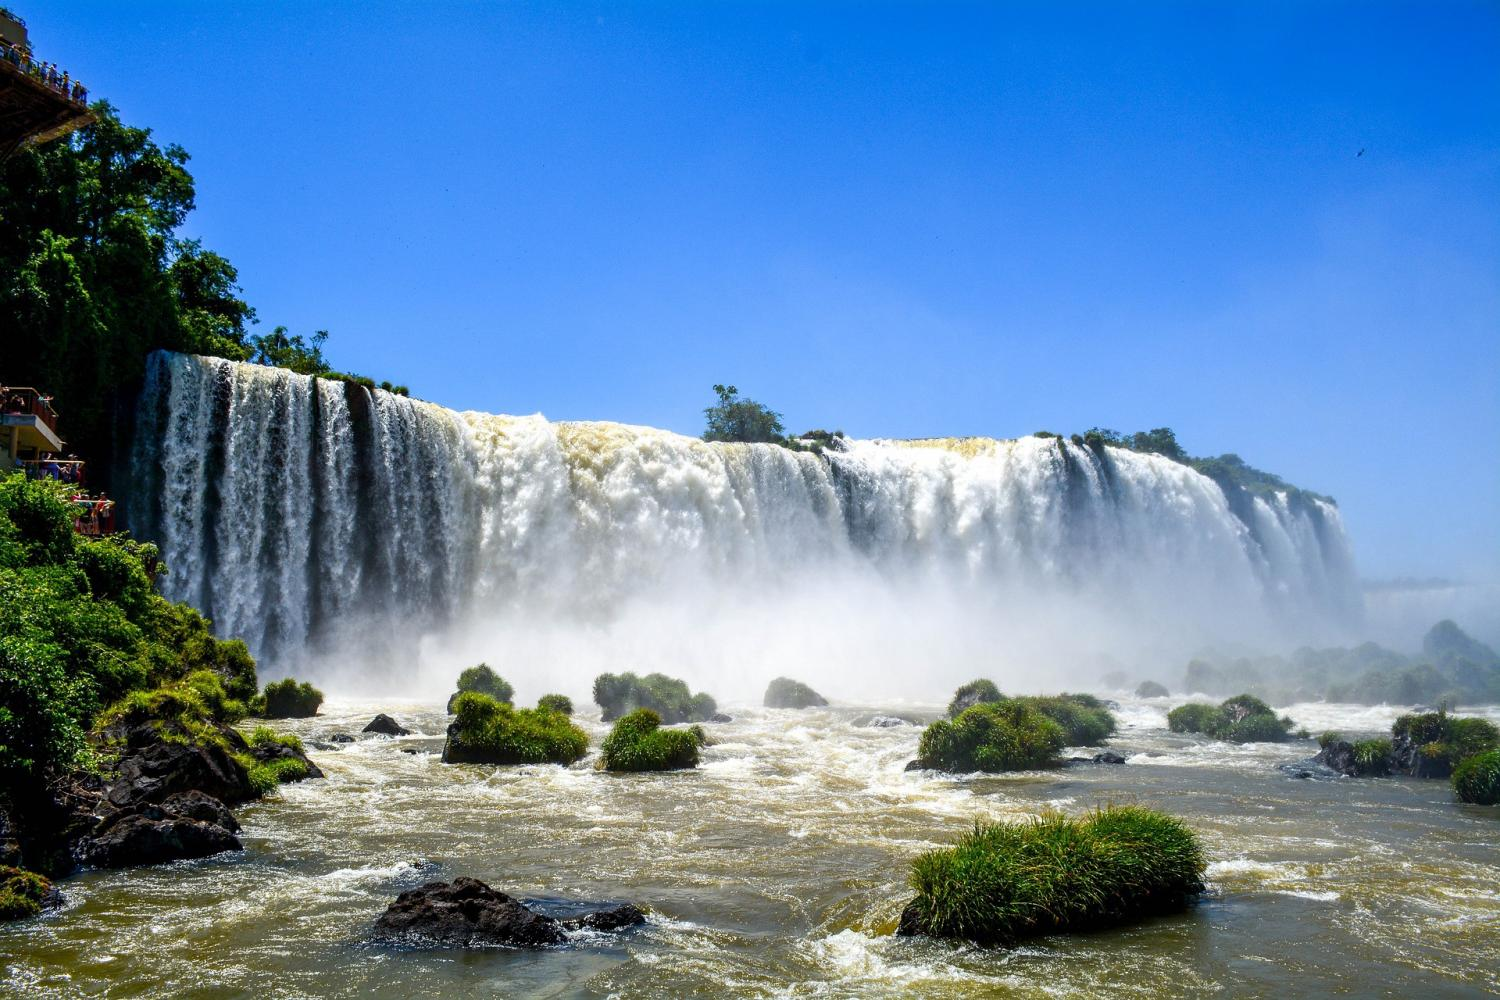 Experience the gorgeous Iguassu Falls with Gray Line